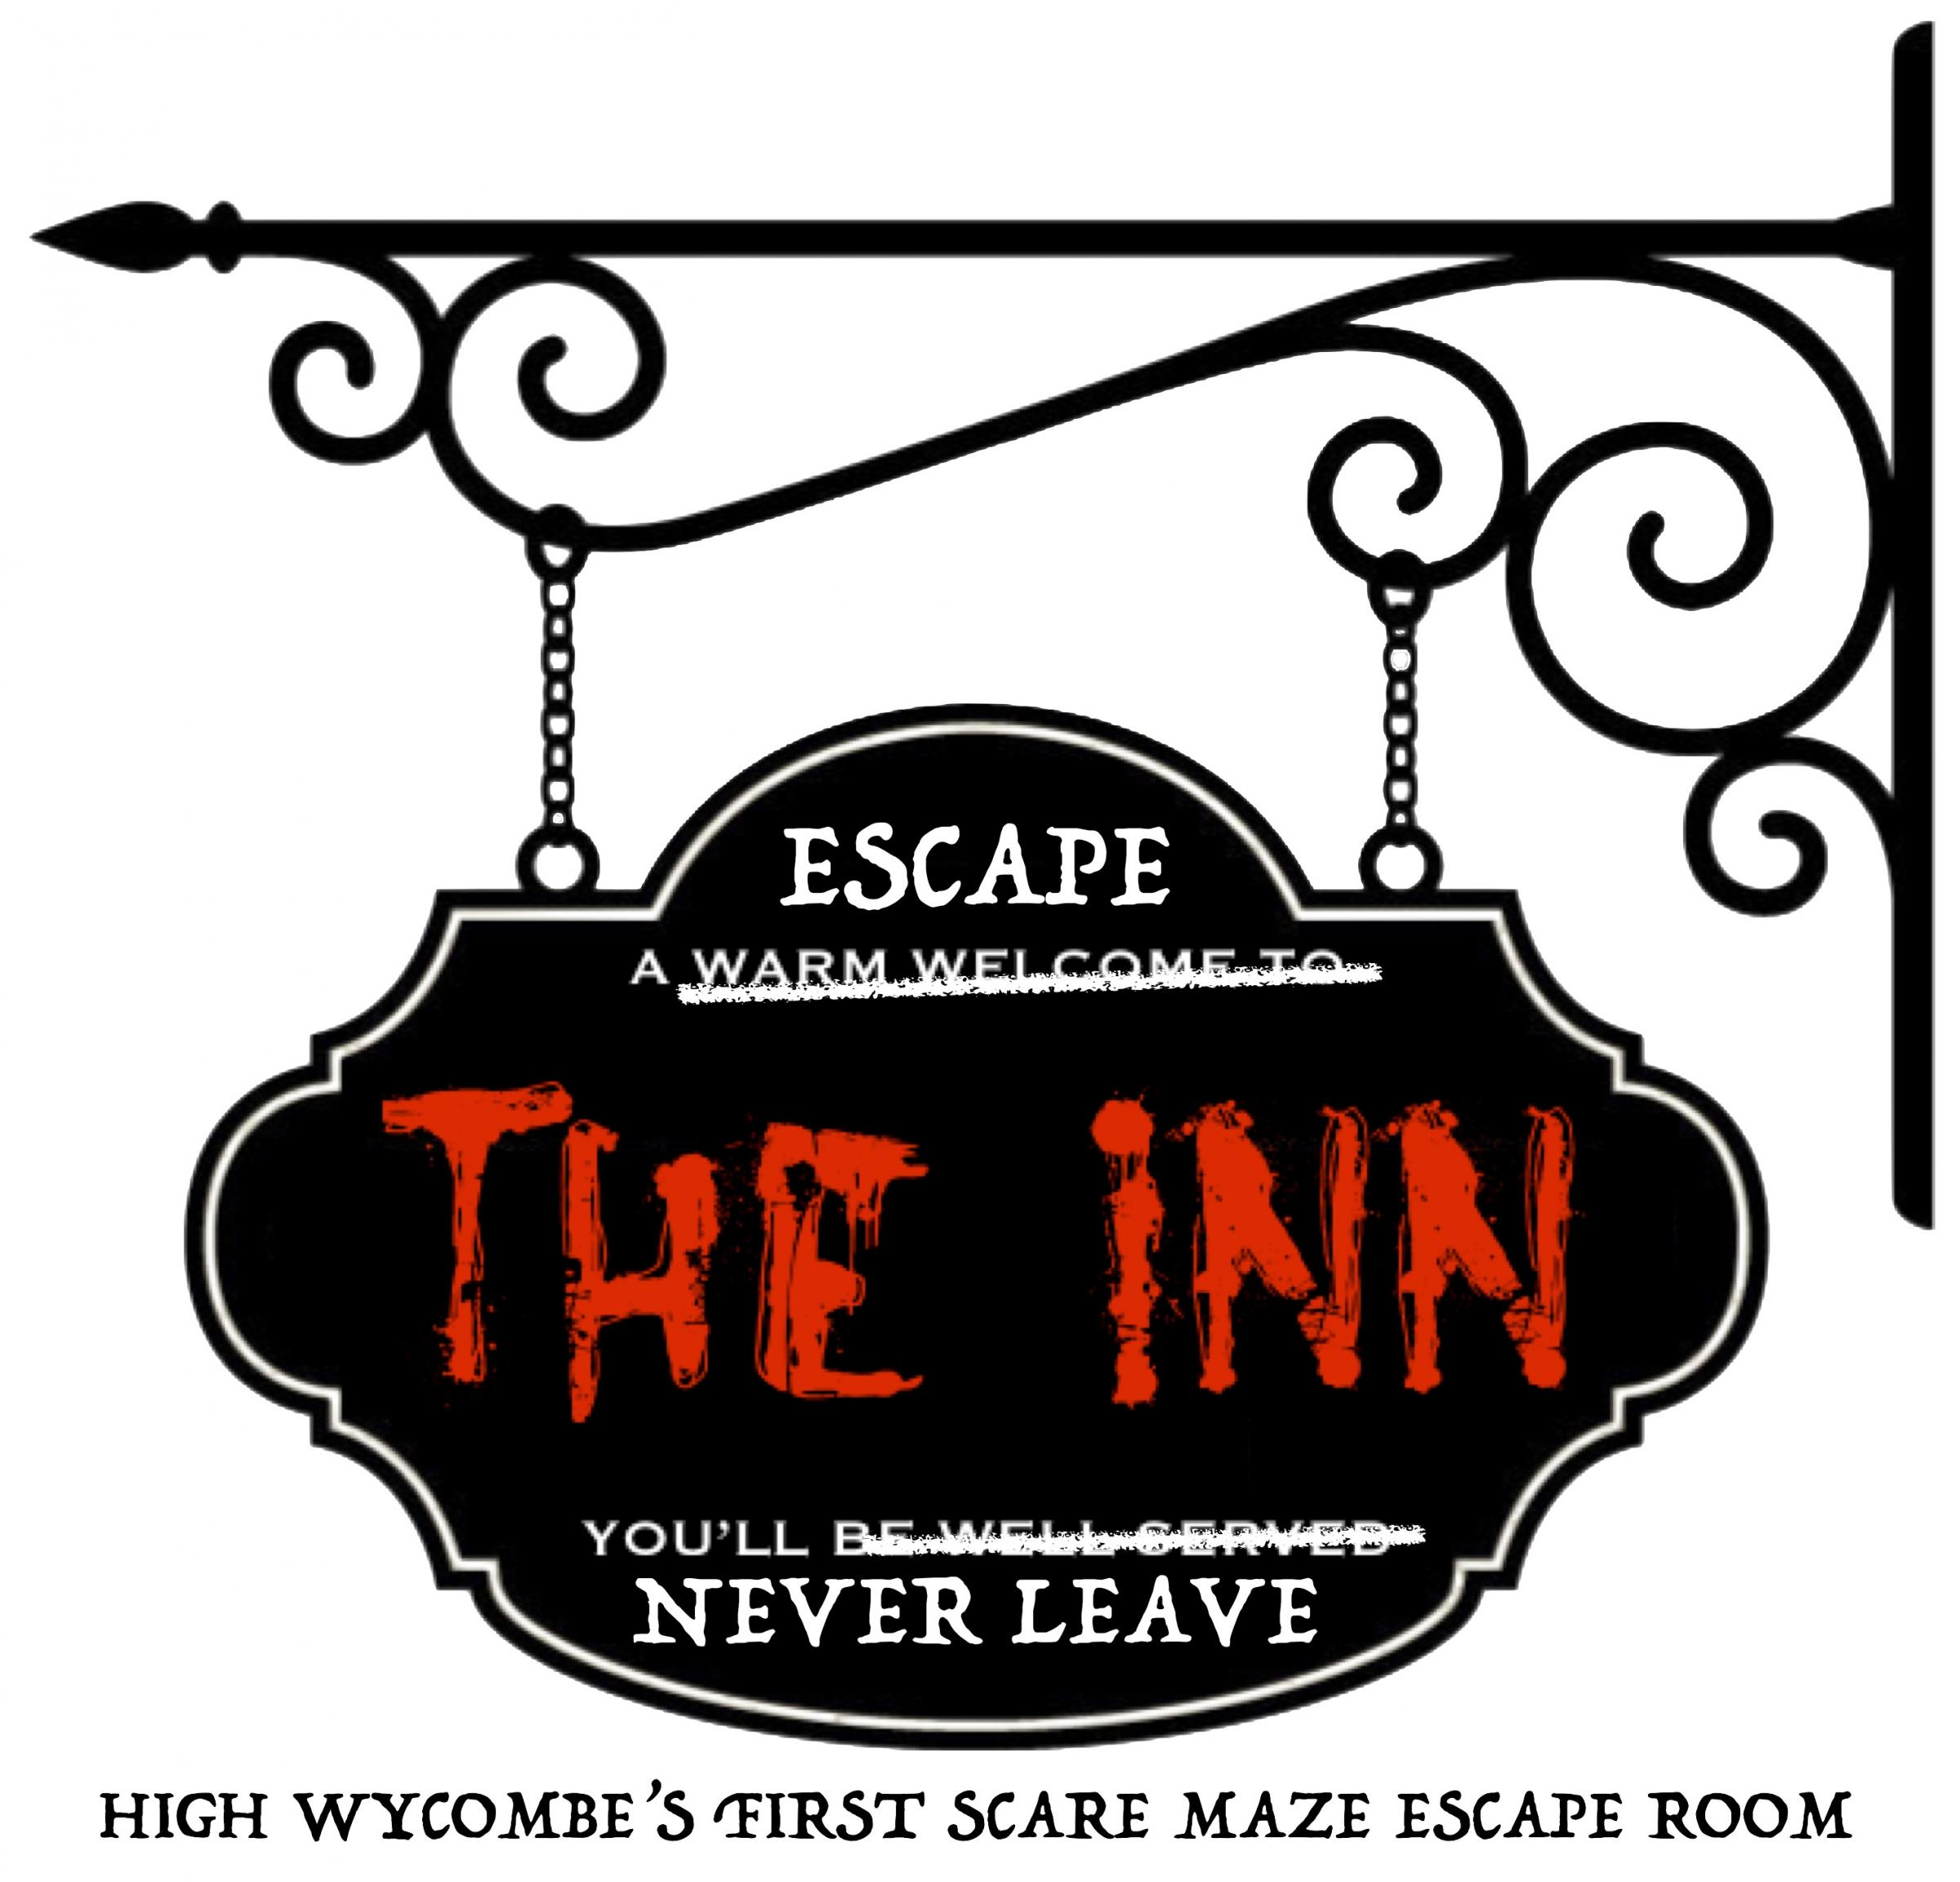 Escape 'The Inn' - LIVE ACTION SCARE ESCAPE ROOM